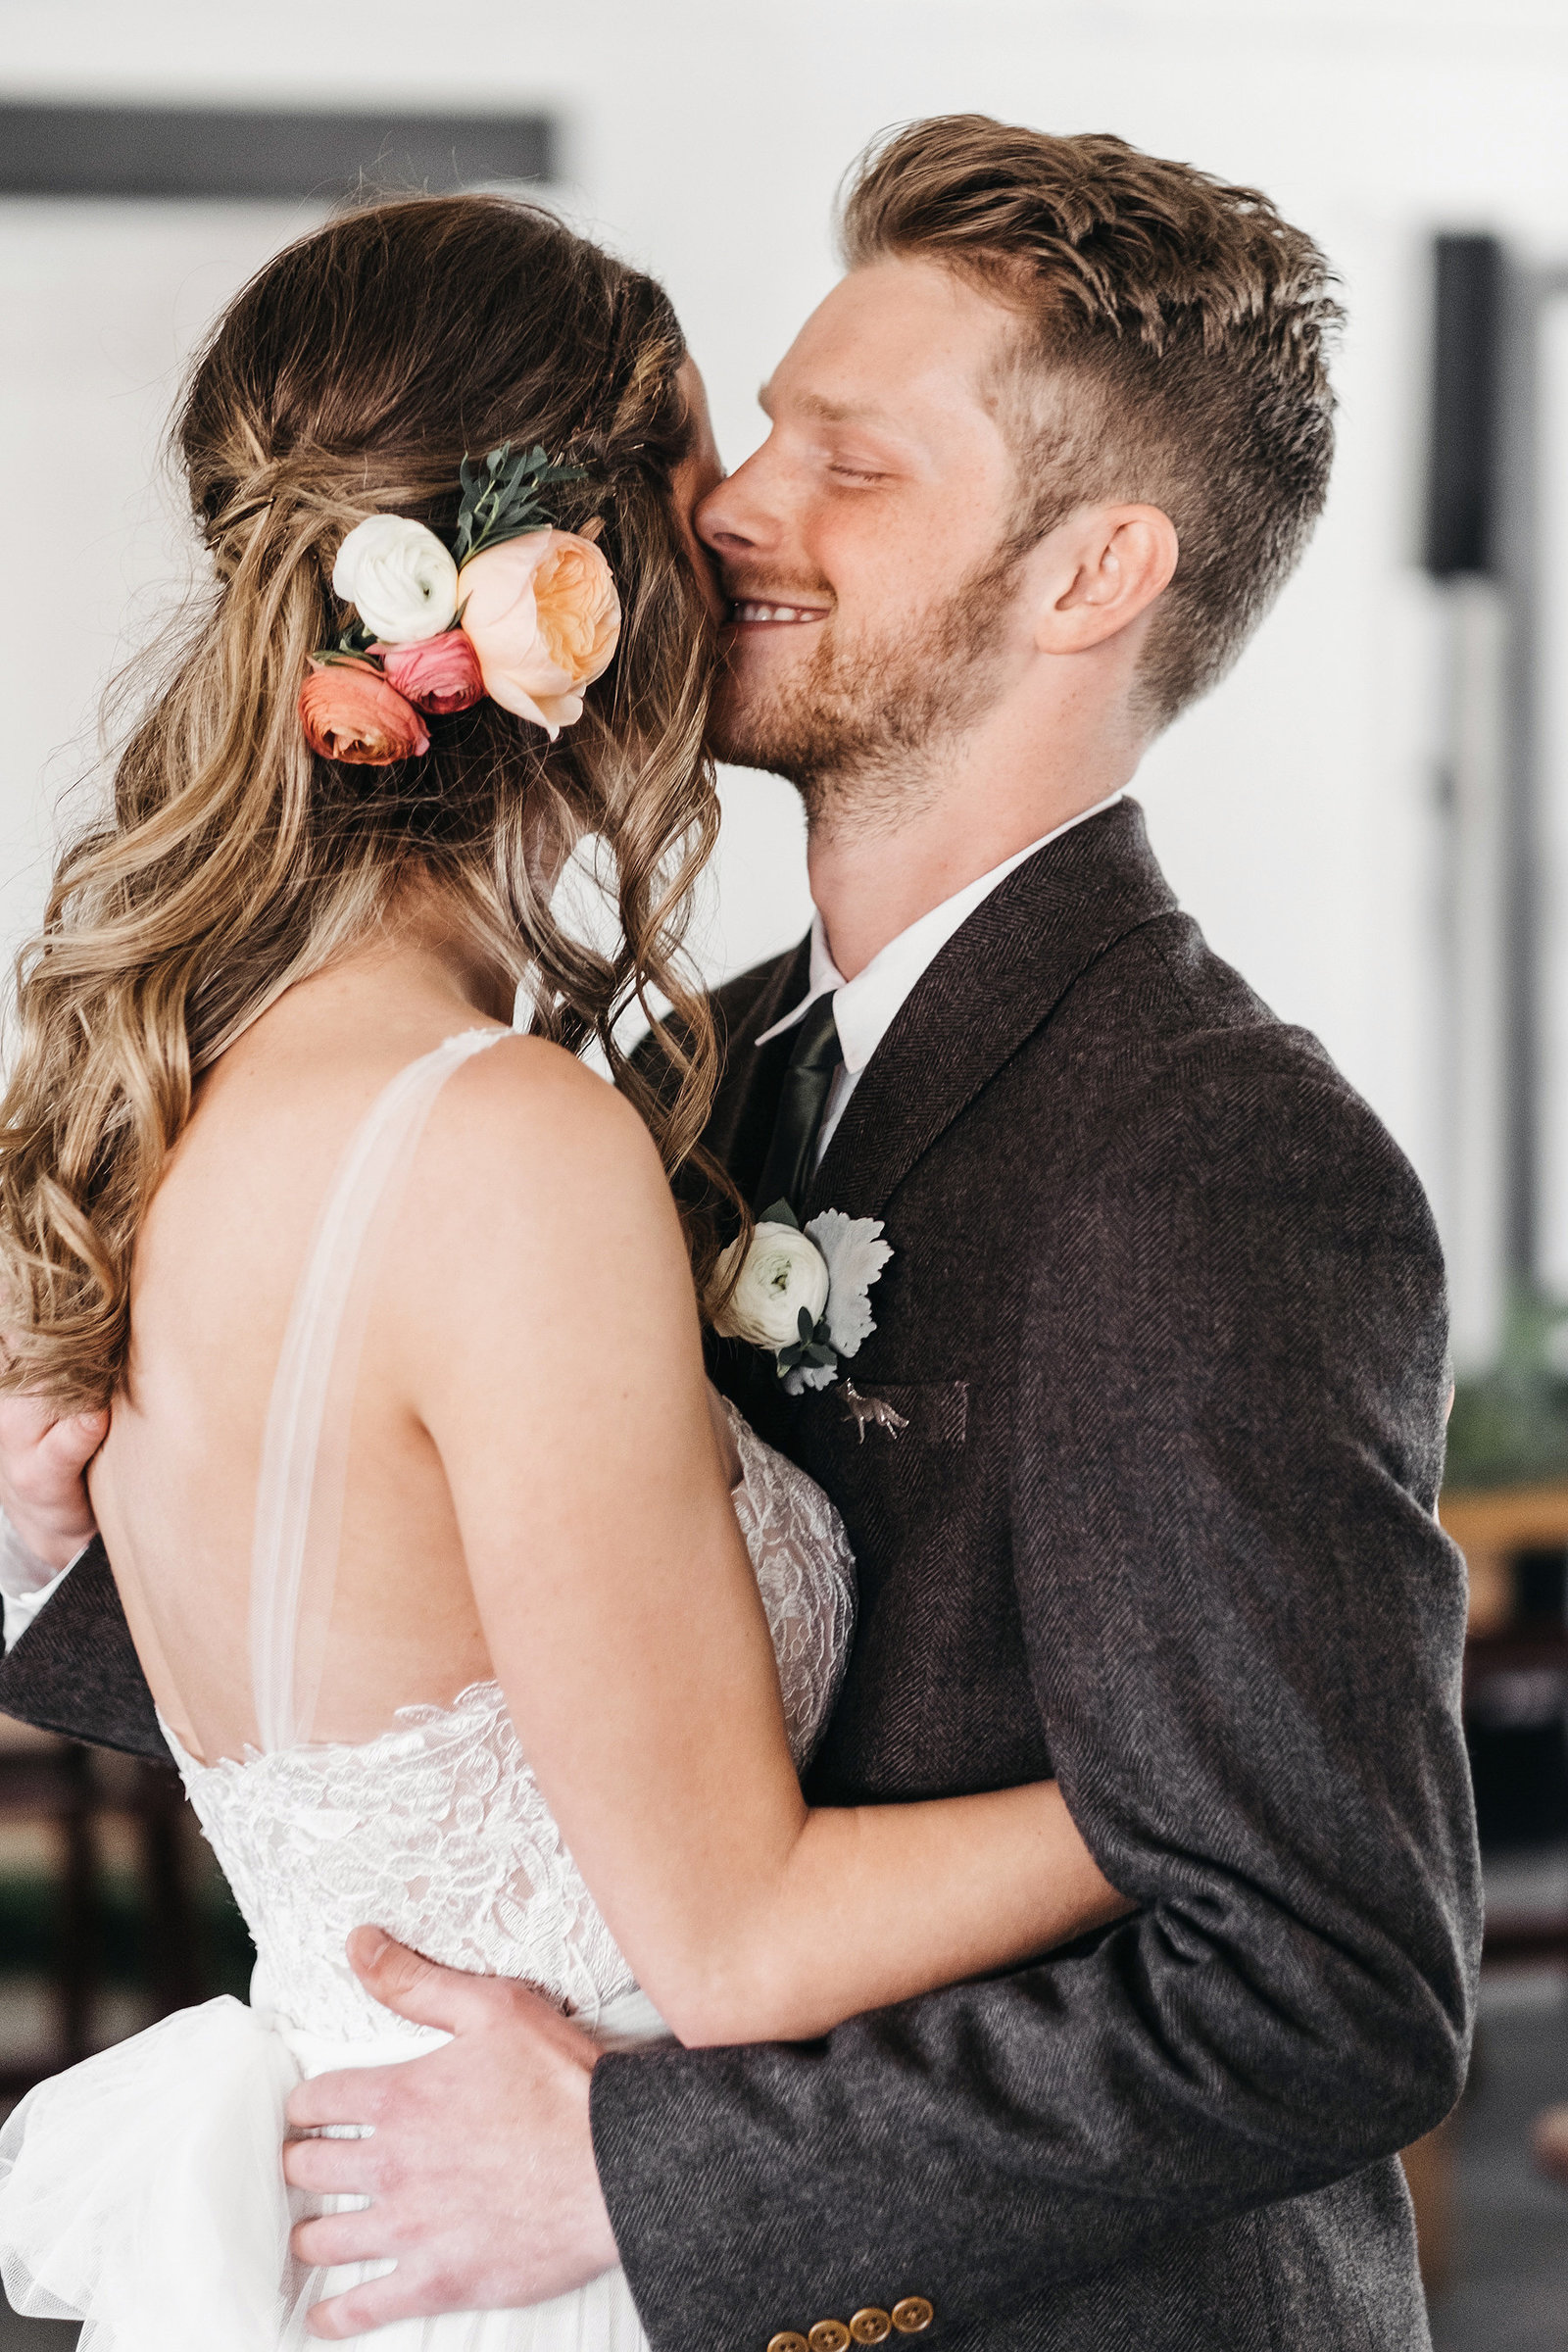 athena-and-camron-seattle-wedding-photographer-dairyland-snohomish-rustic-barn-wedding-flowers-styling-inspiration-lauren-madison-26